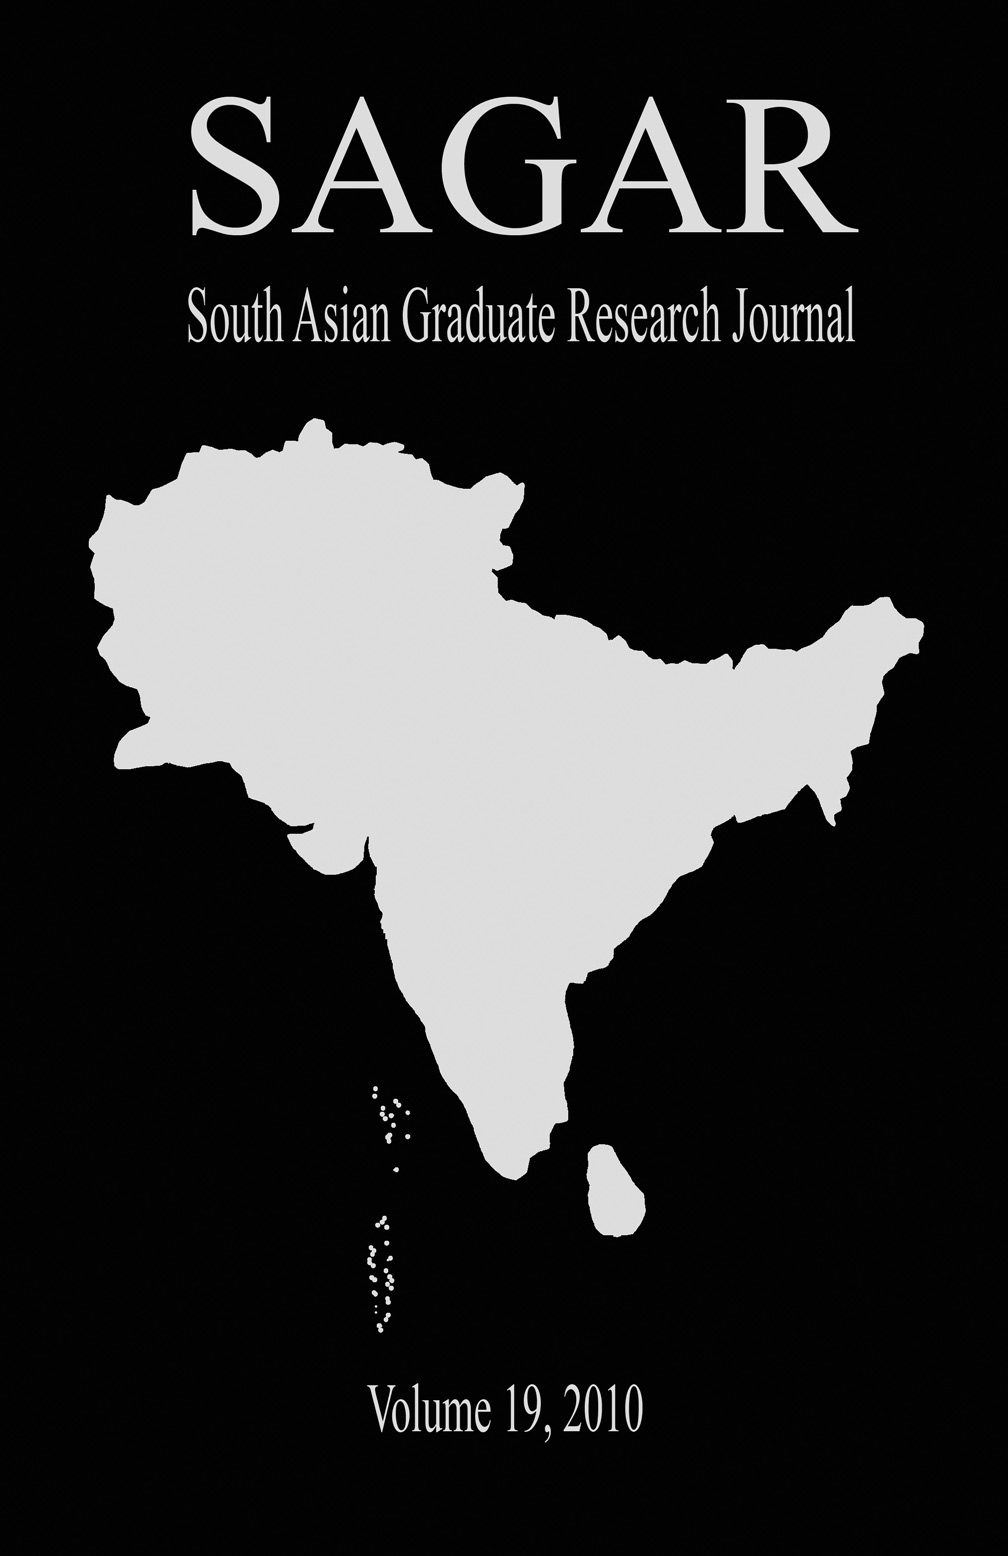 South Asia Graduate Research Journal Announces Call for Papers